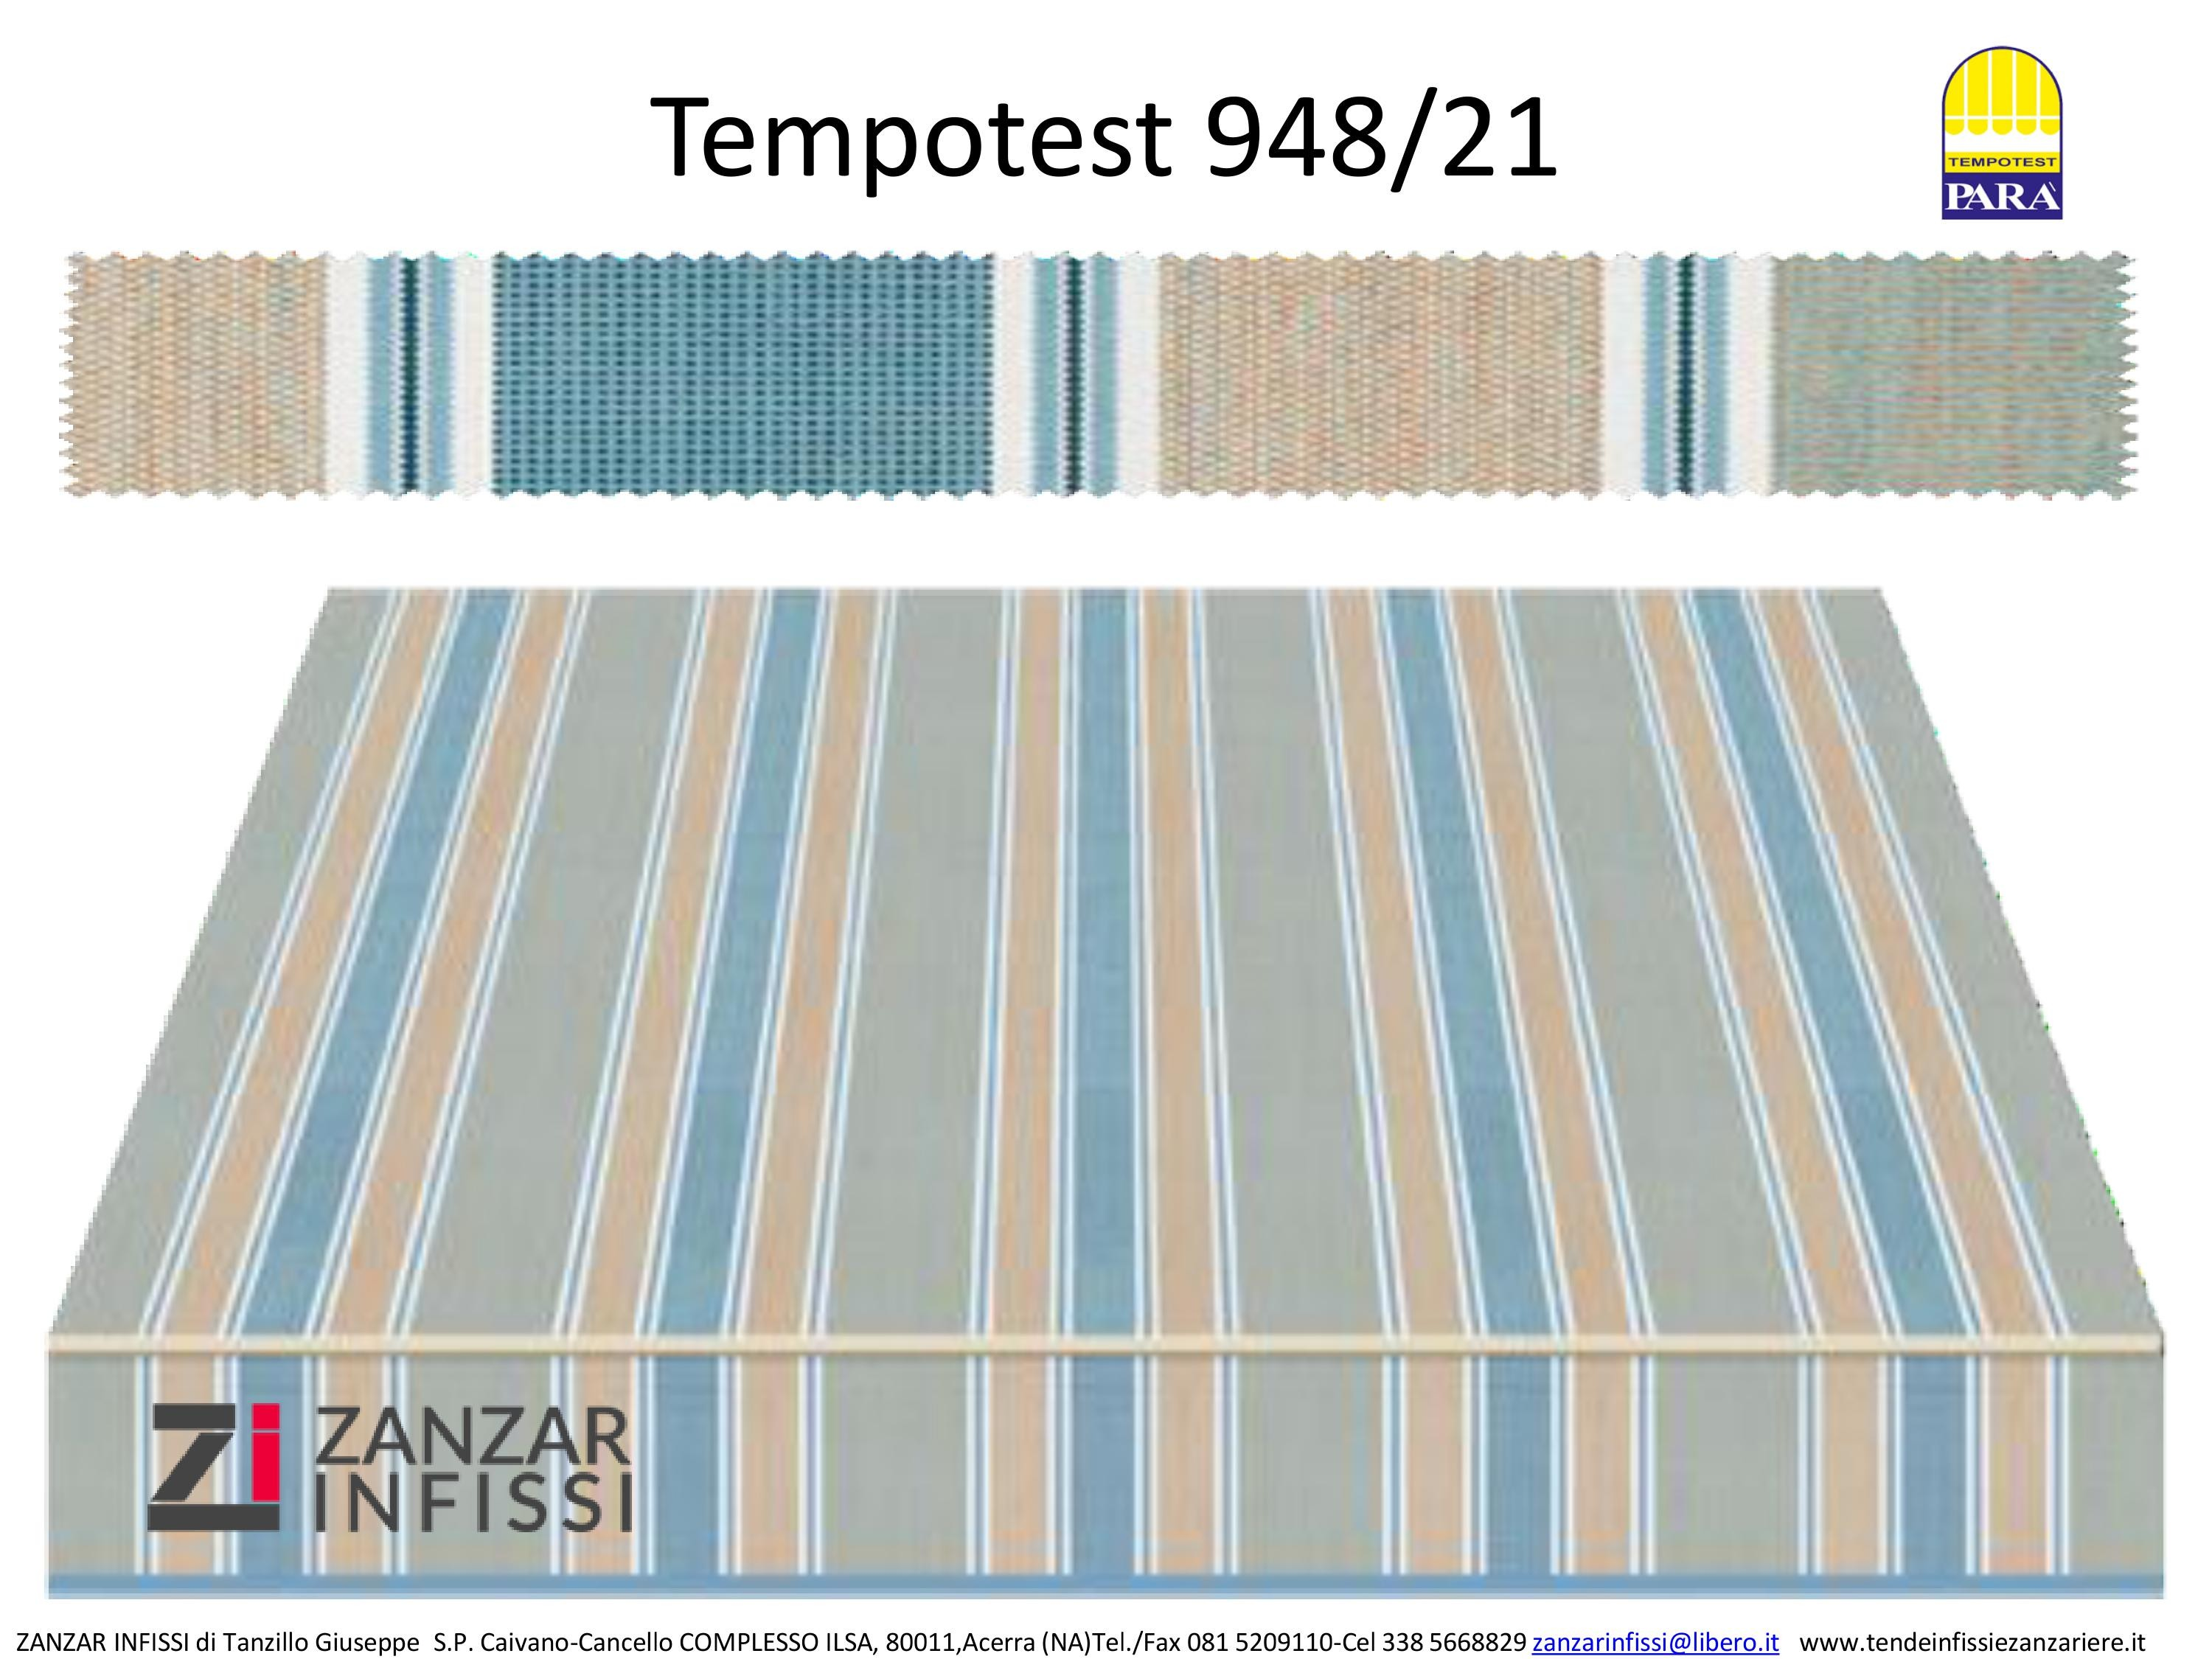 Tempotest 948/21